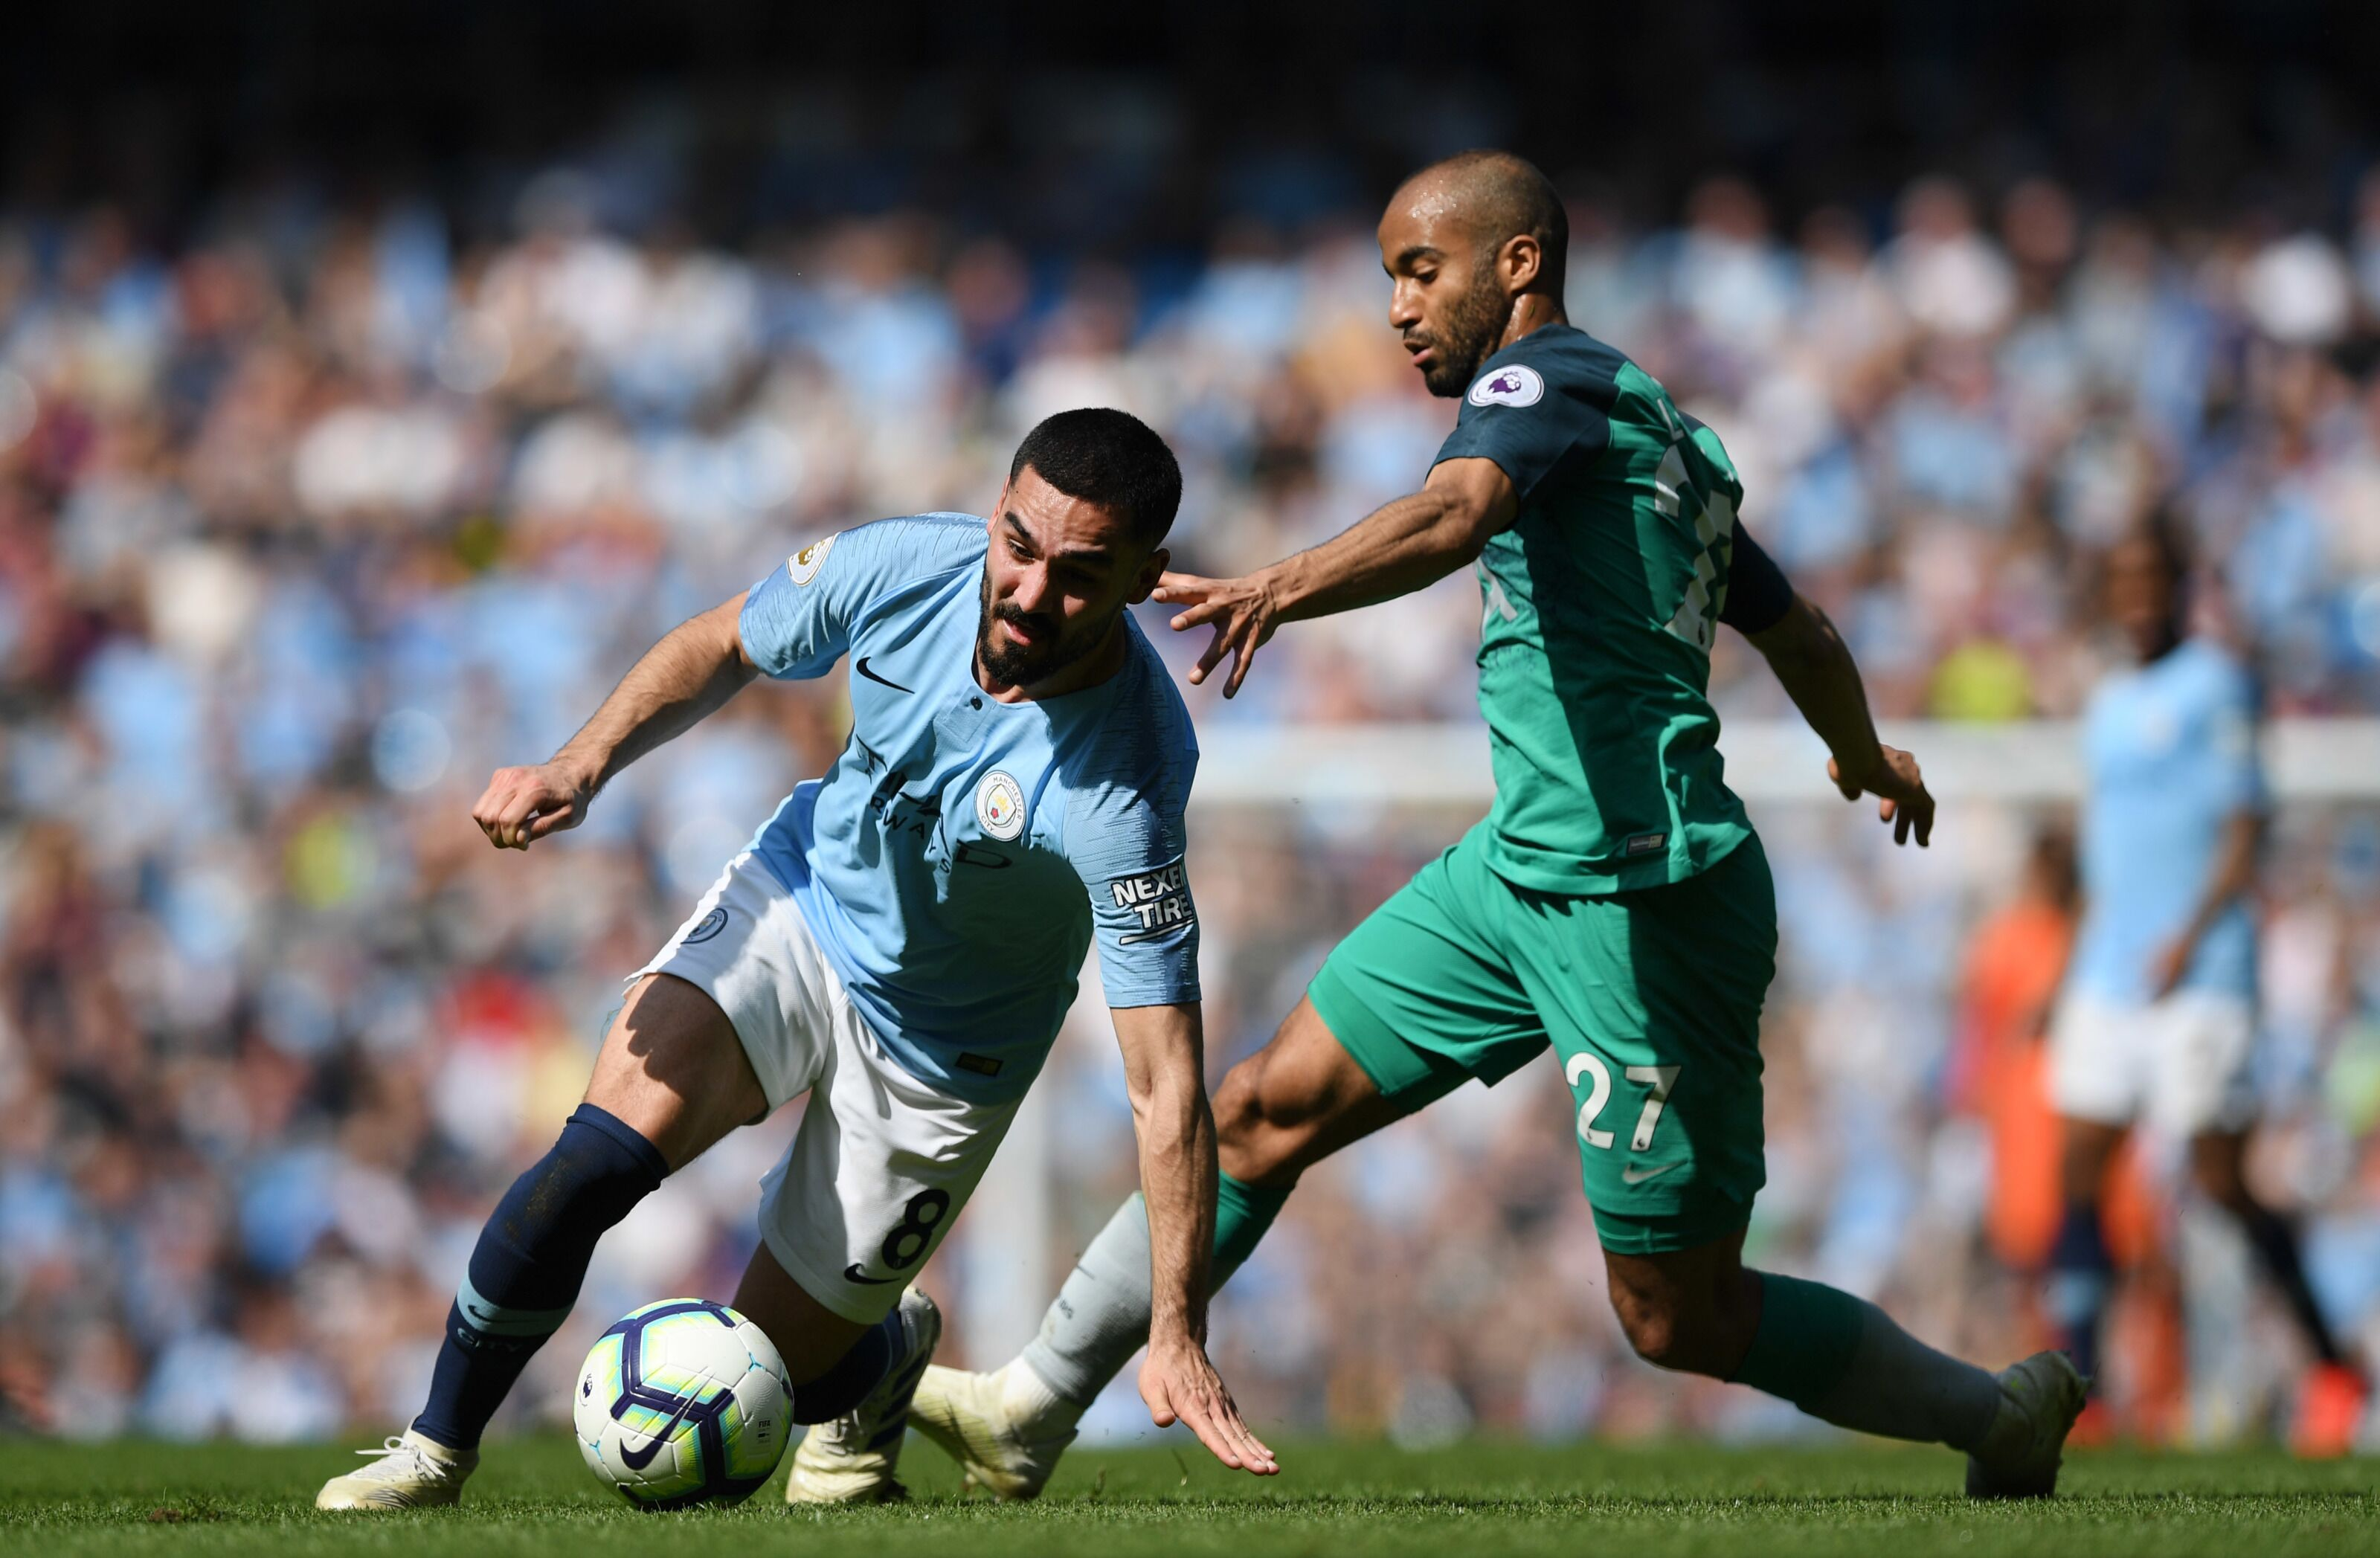 English Premier League: Saturday Matchday 2 best picks and predictions